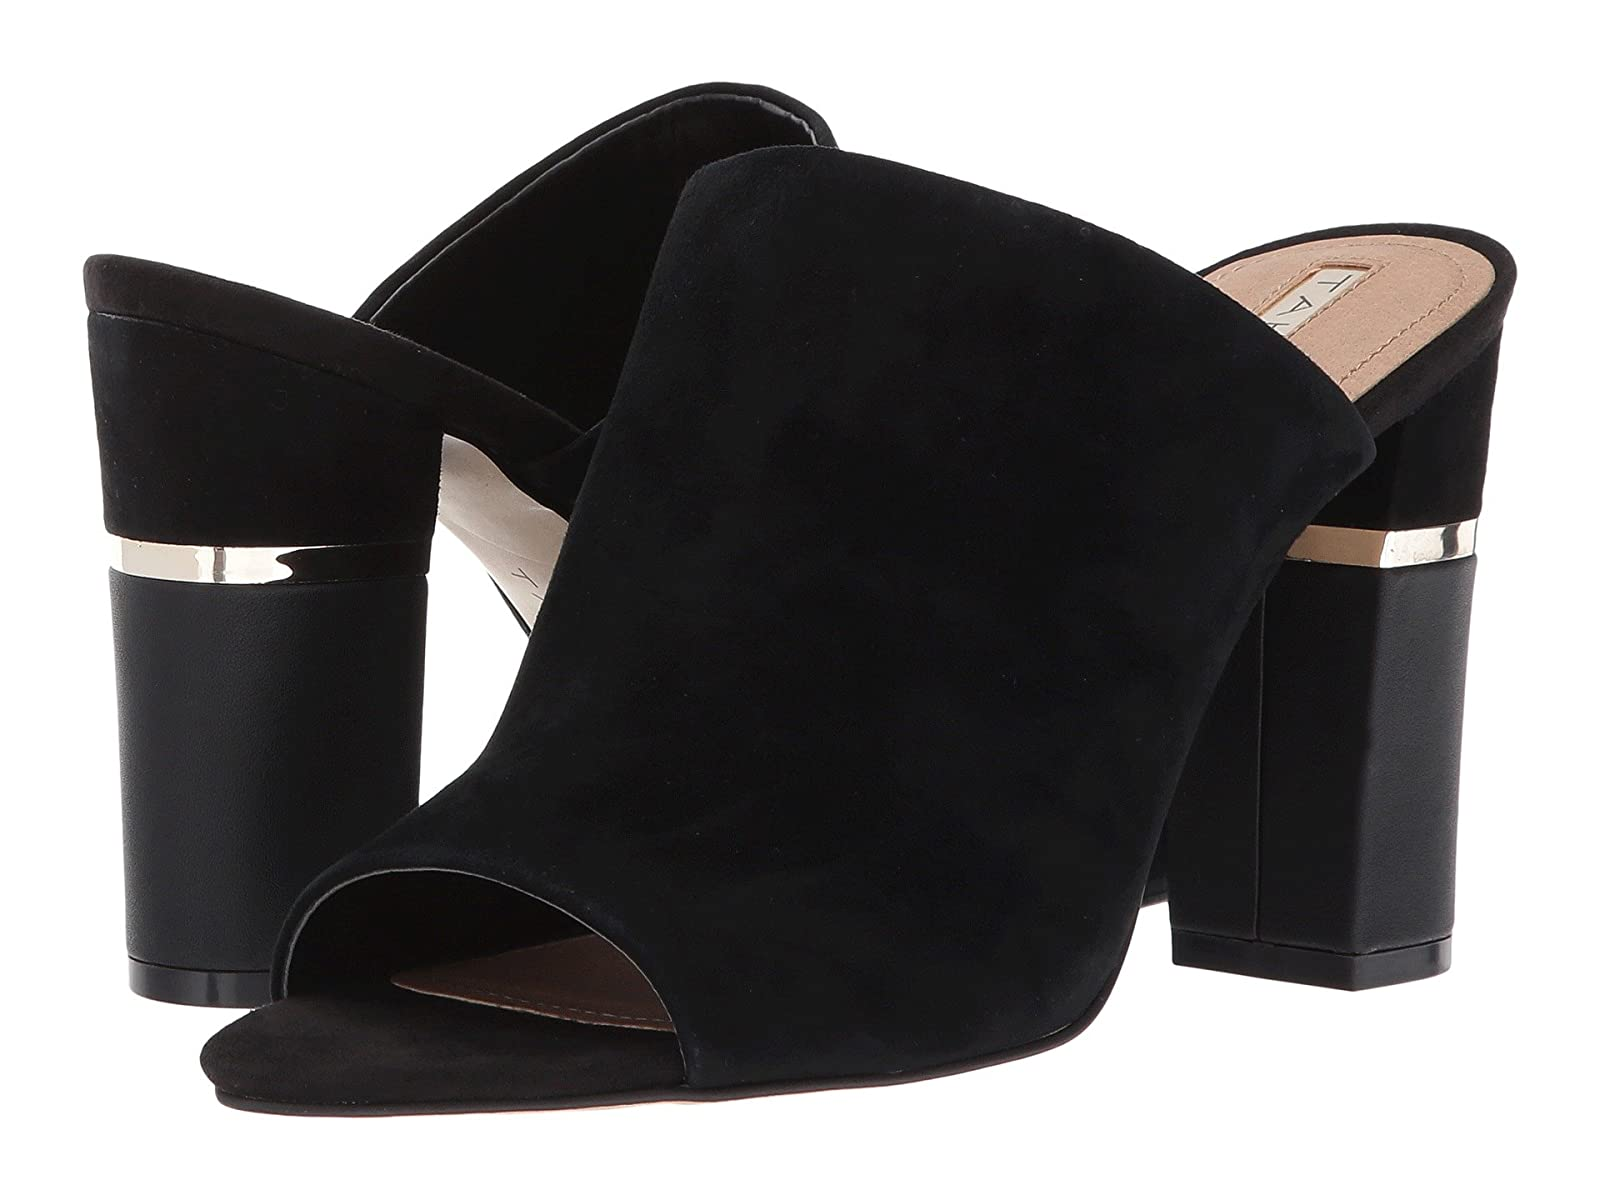 Tahari MelissaCheap and distinctive eye-catching shoes